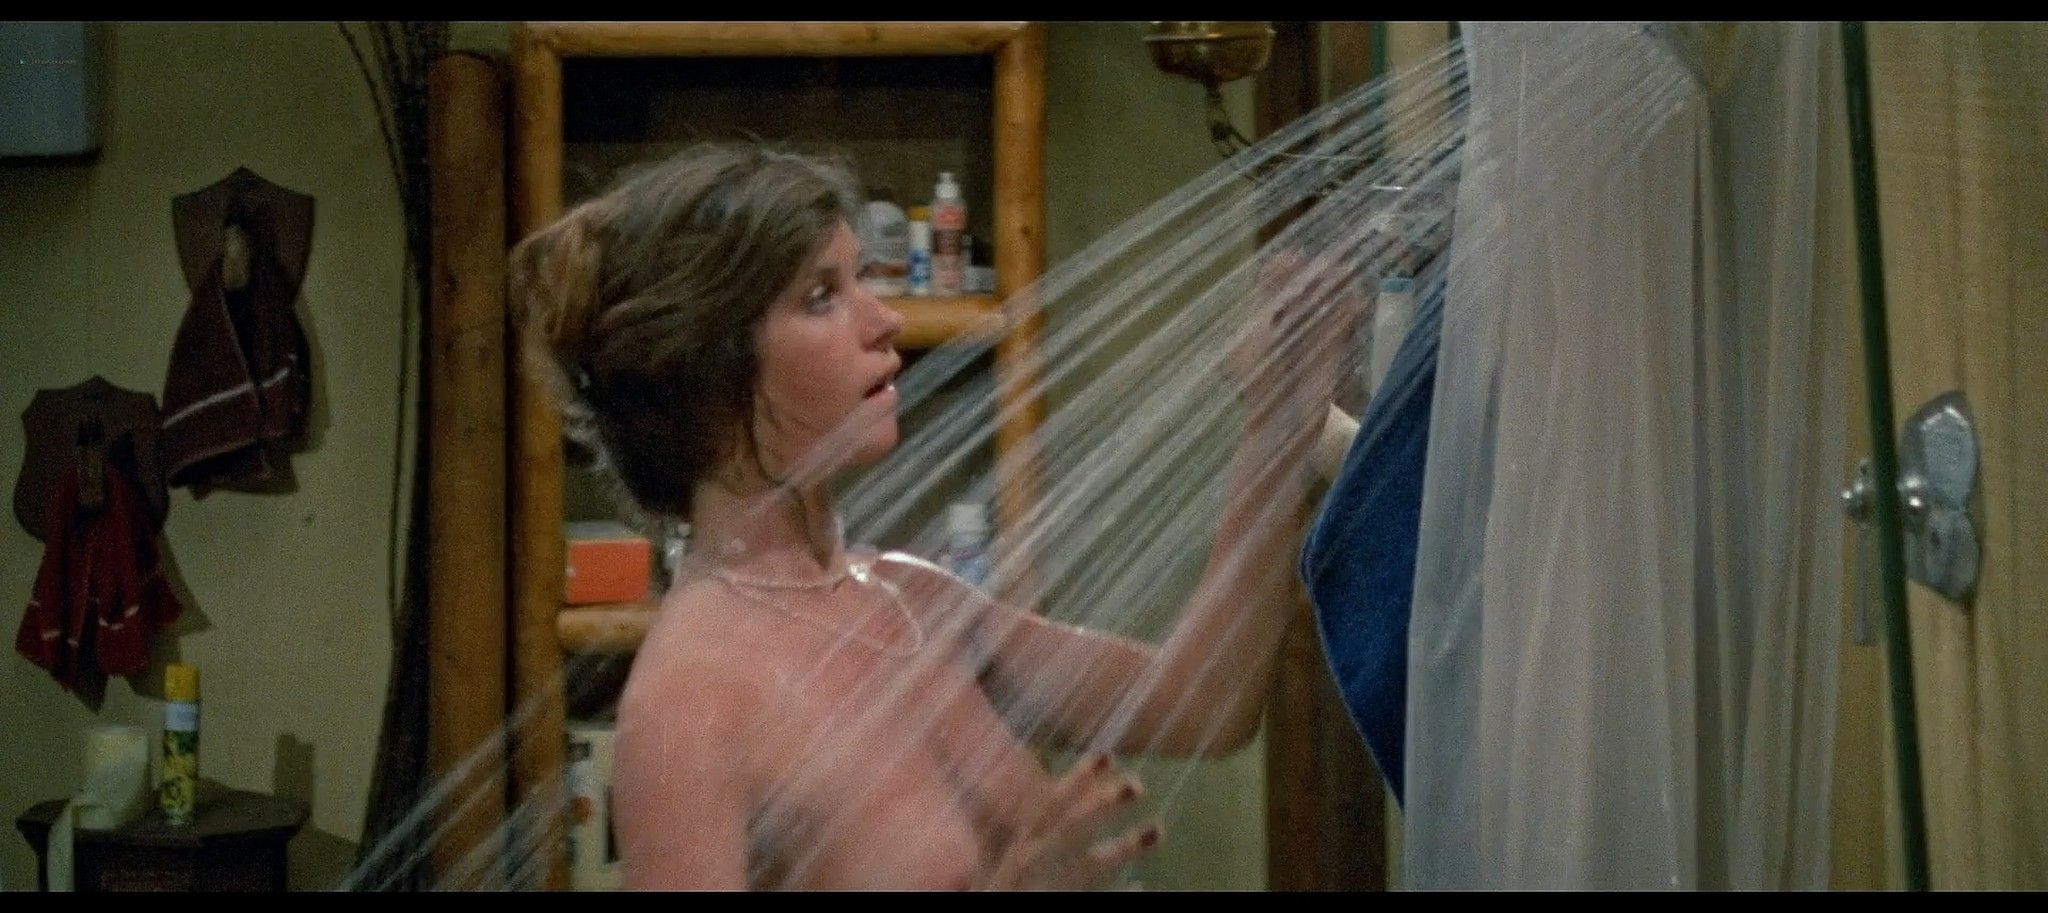 Tracie Savage nude in the shower Friday the 13th Part 3 1982 BluRay 9